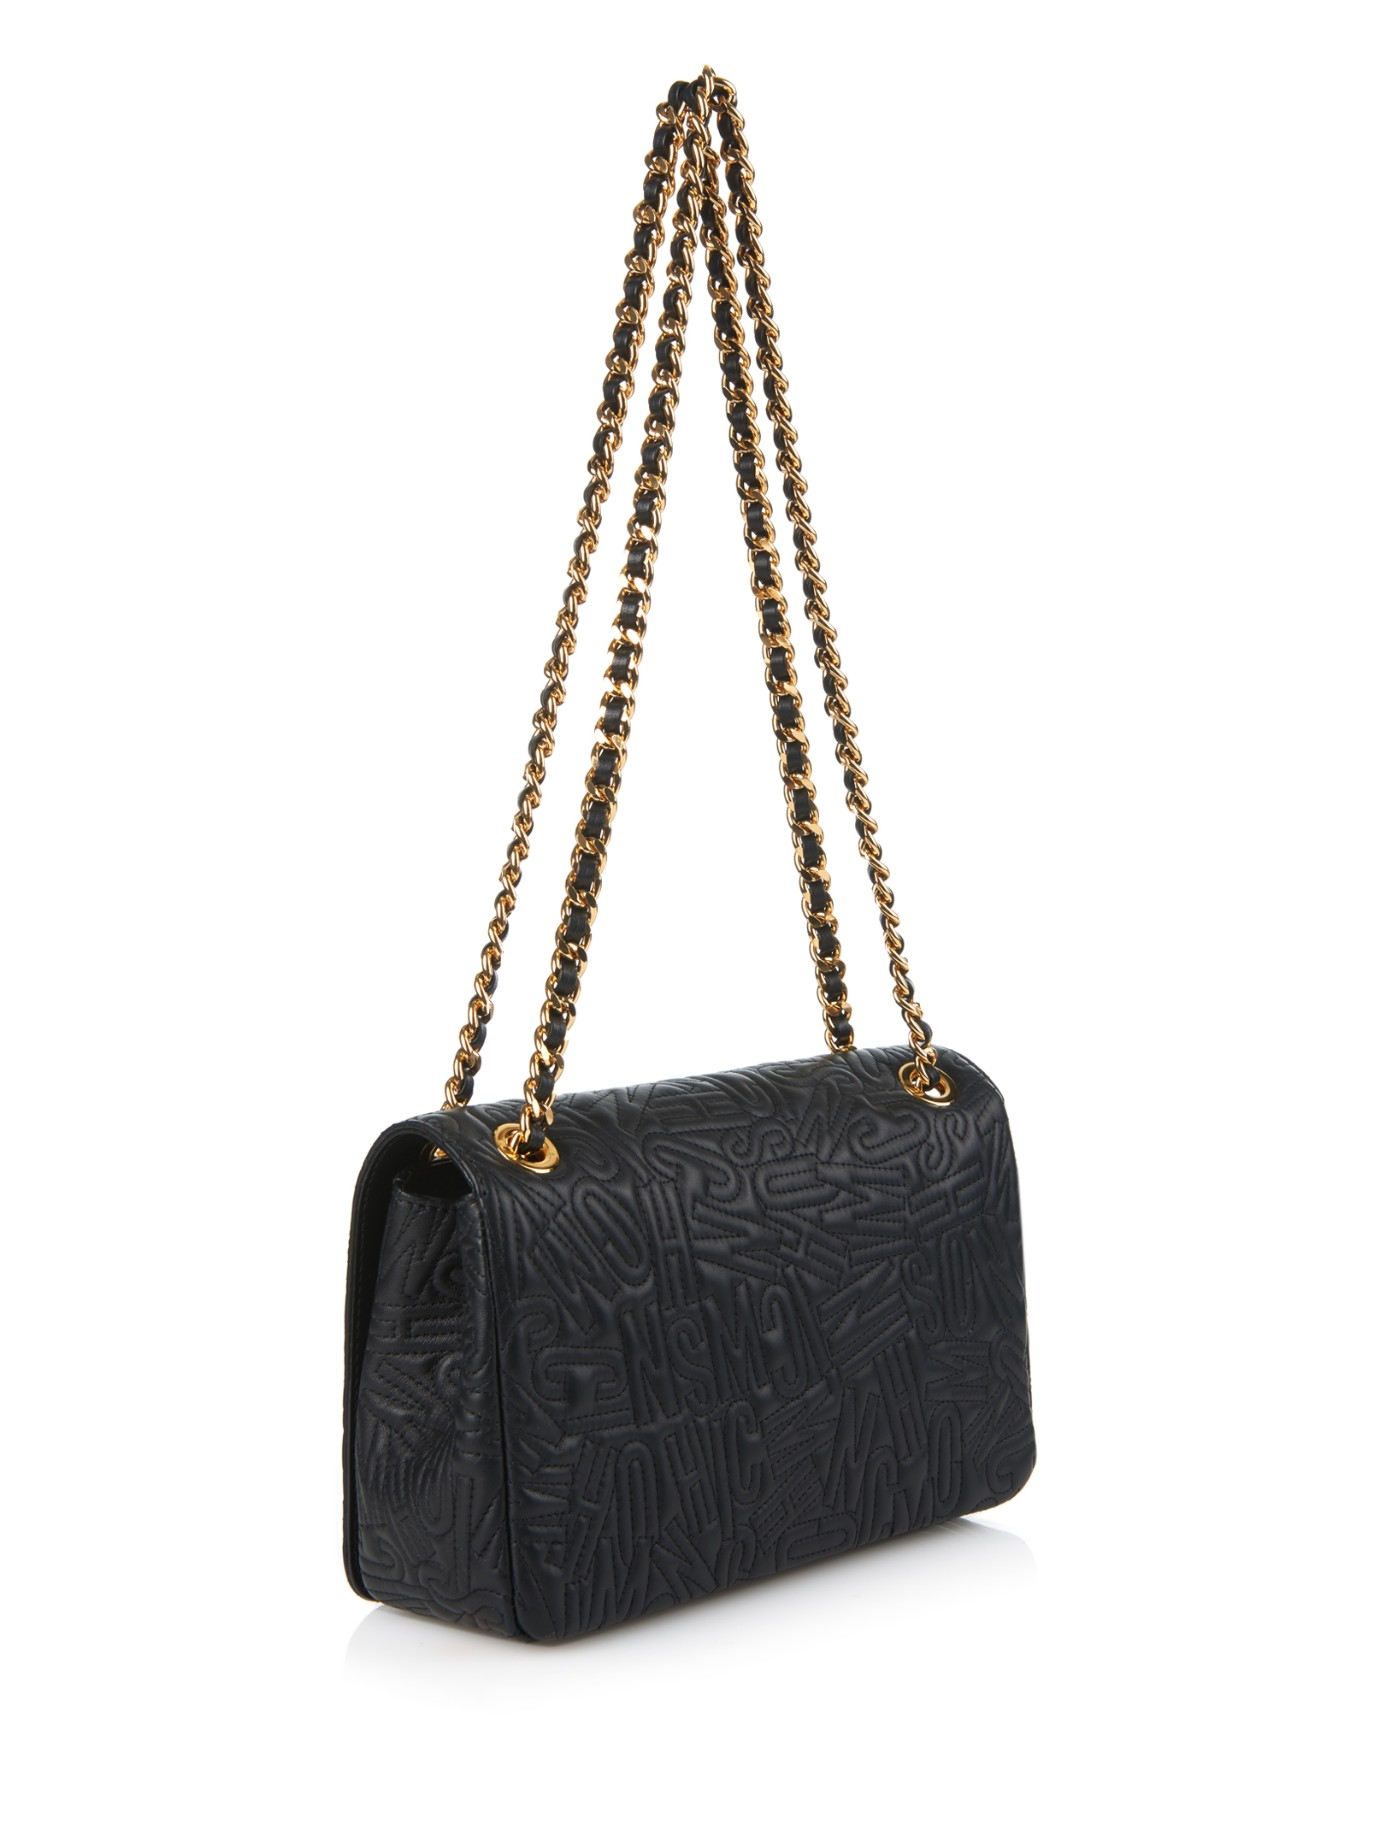 Lyst - Moschino Letter-quilted Leather Shoulder Bag in Black : moschino quilted shoulder bag - Adamdwight.com